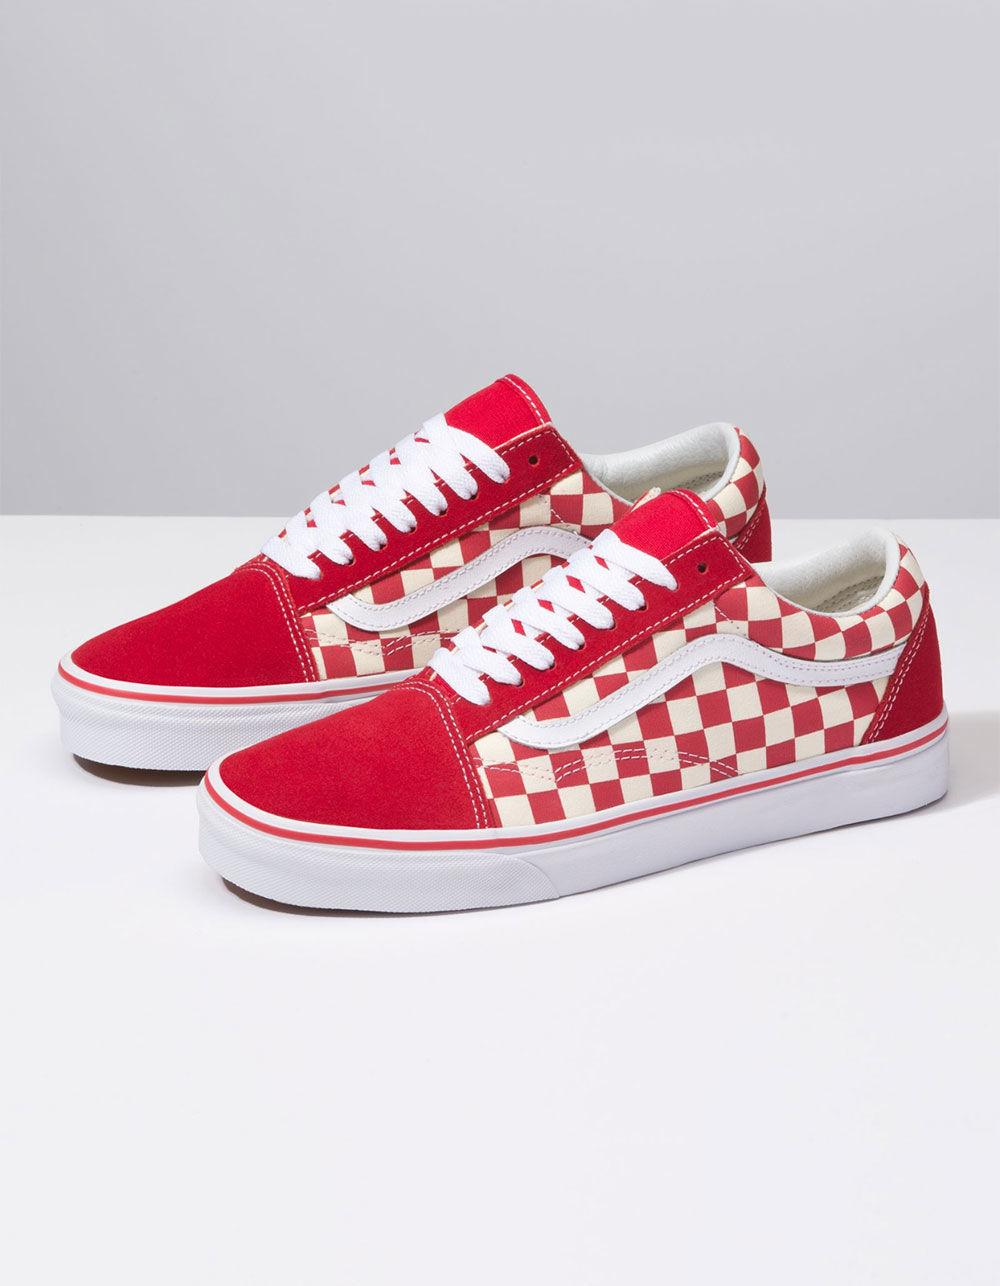 672bc0ec59 Lyst - Vans Primary Check Old Skool Racing Red   White Shoes in Red for Men